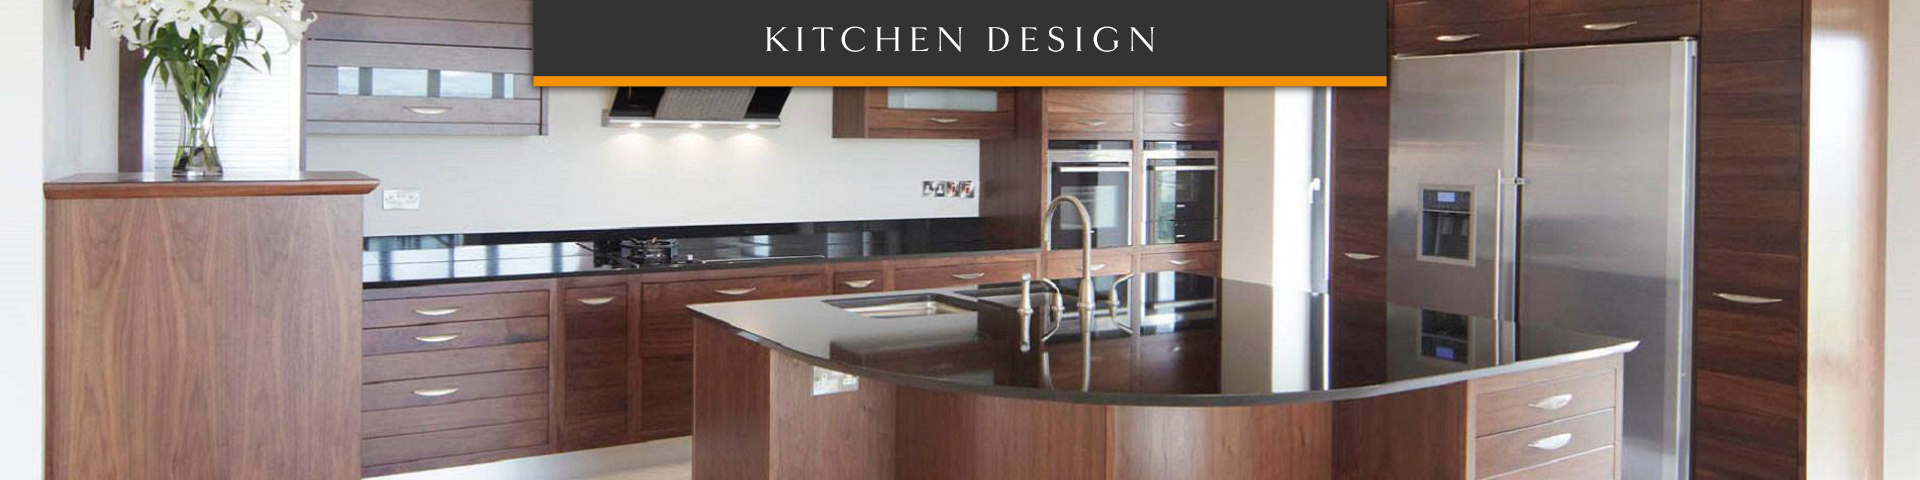 Kitchen Design Lanarkshire